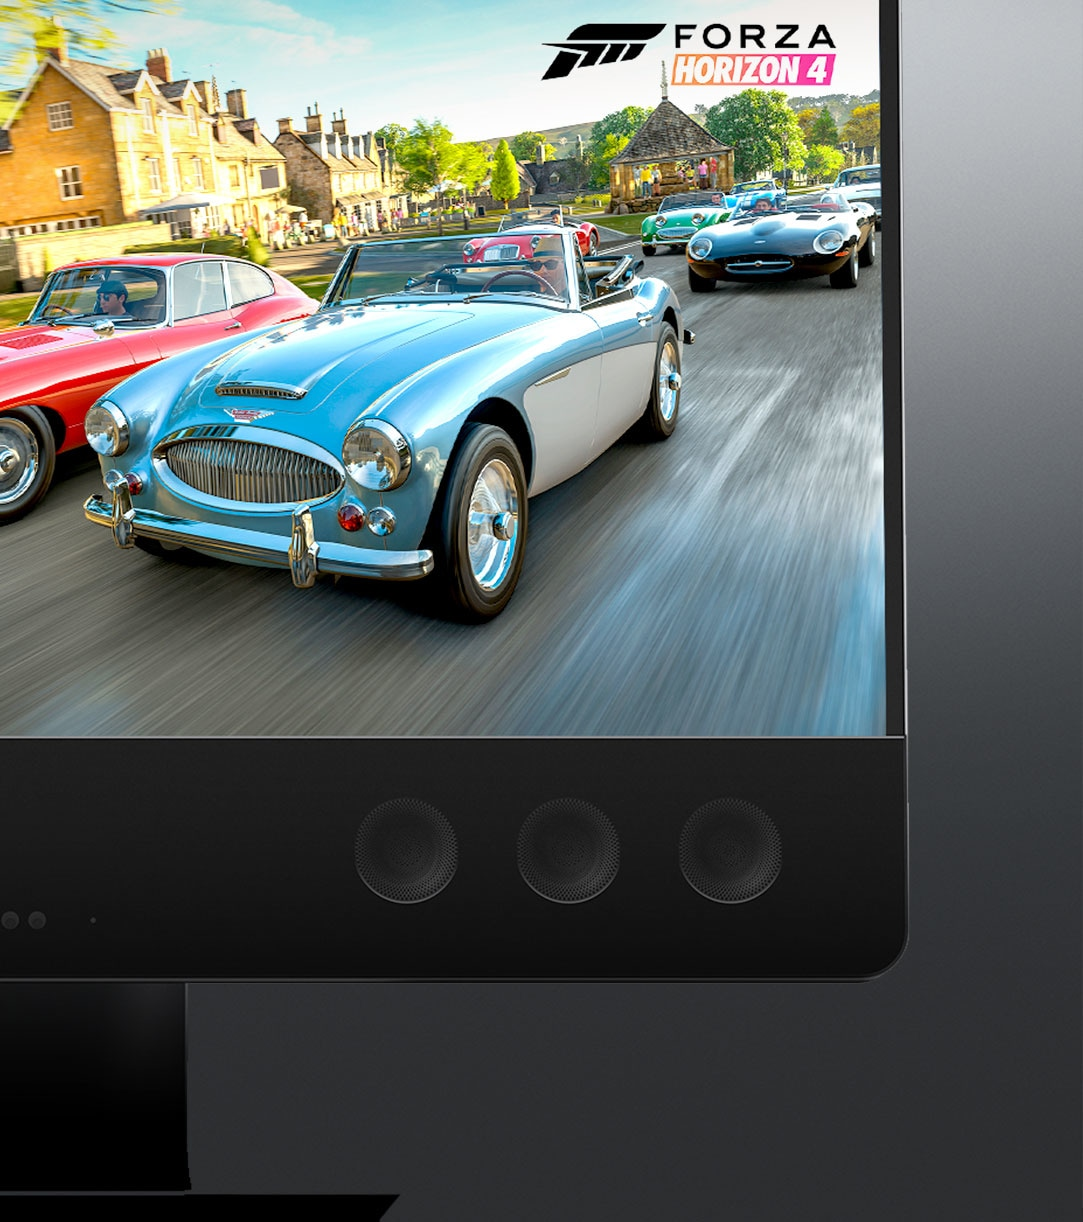 A Windows 10 All-in-One shows Forza Horizon 4 game with two cars racing